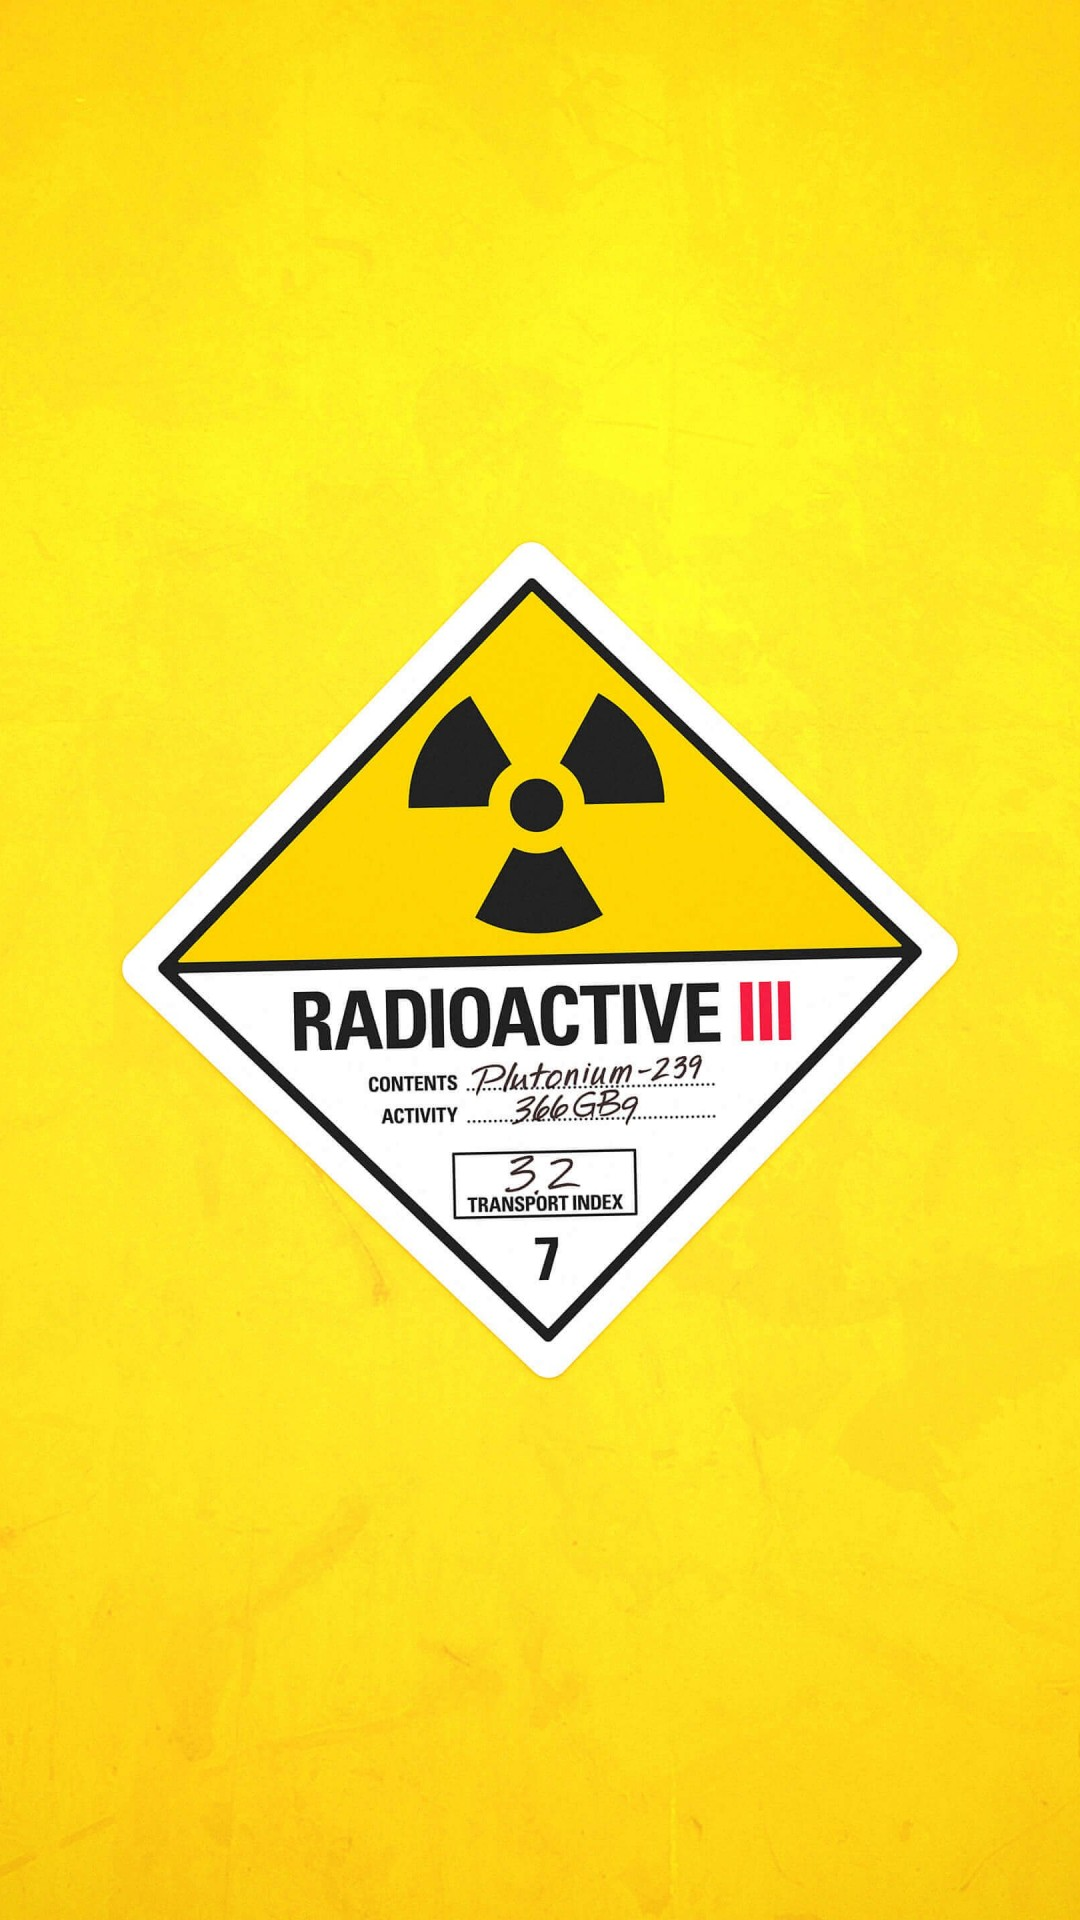 Radioactive Wallpaper for SAMSUNG Galaxy Note 3